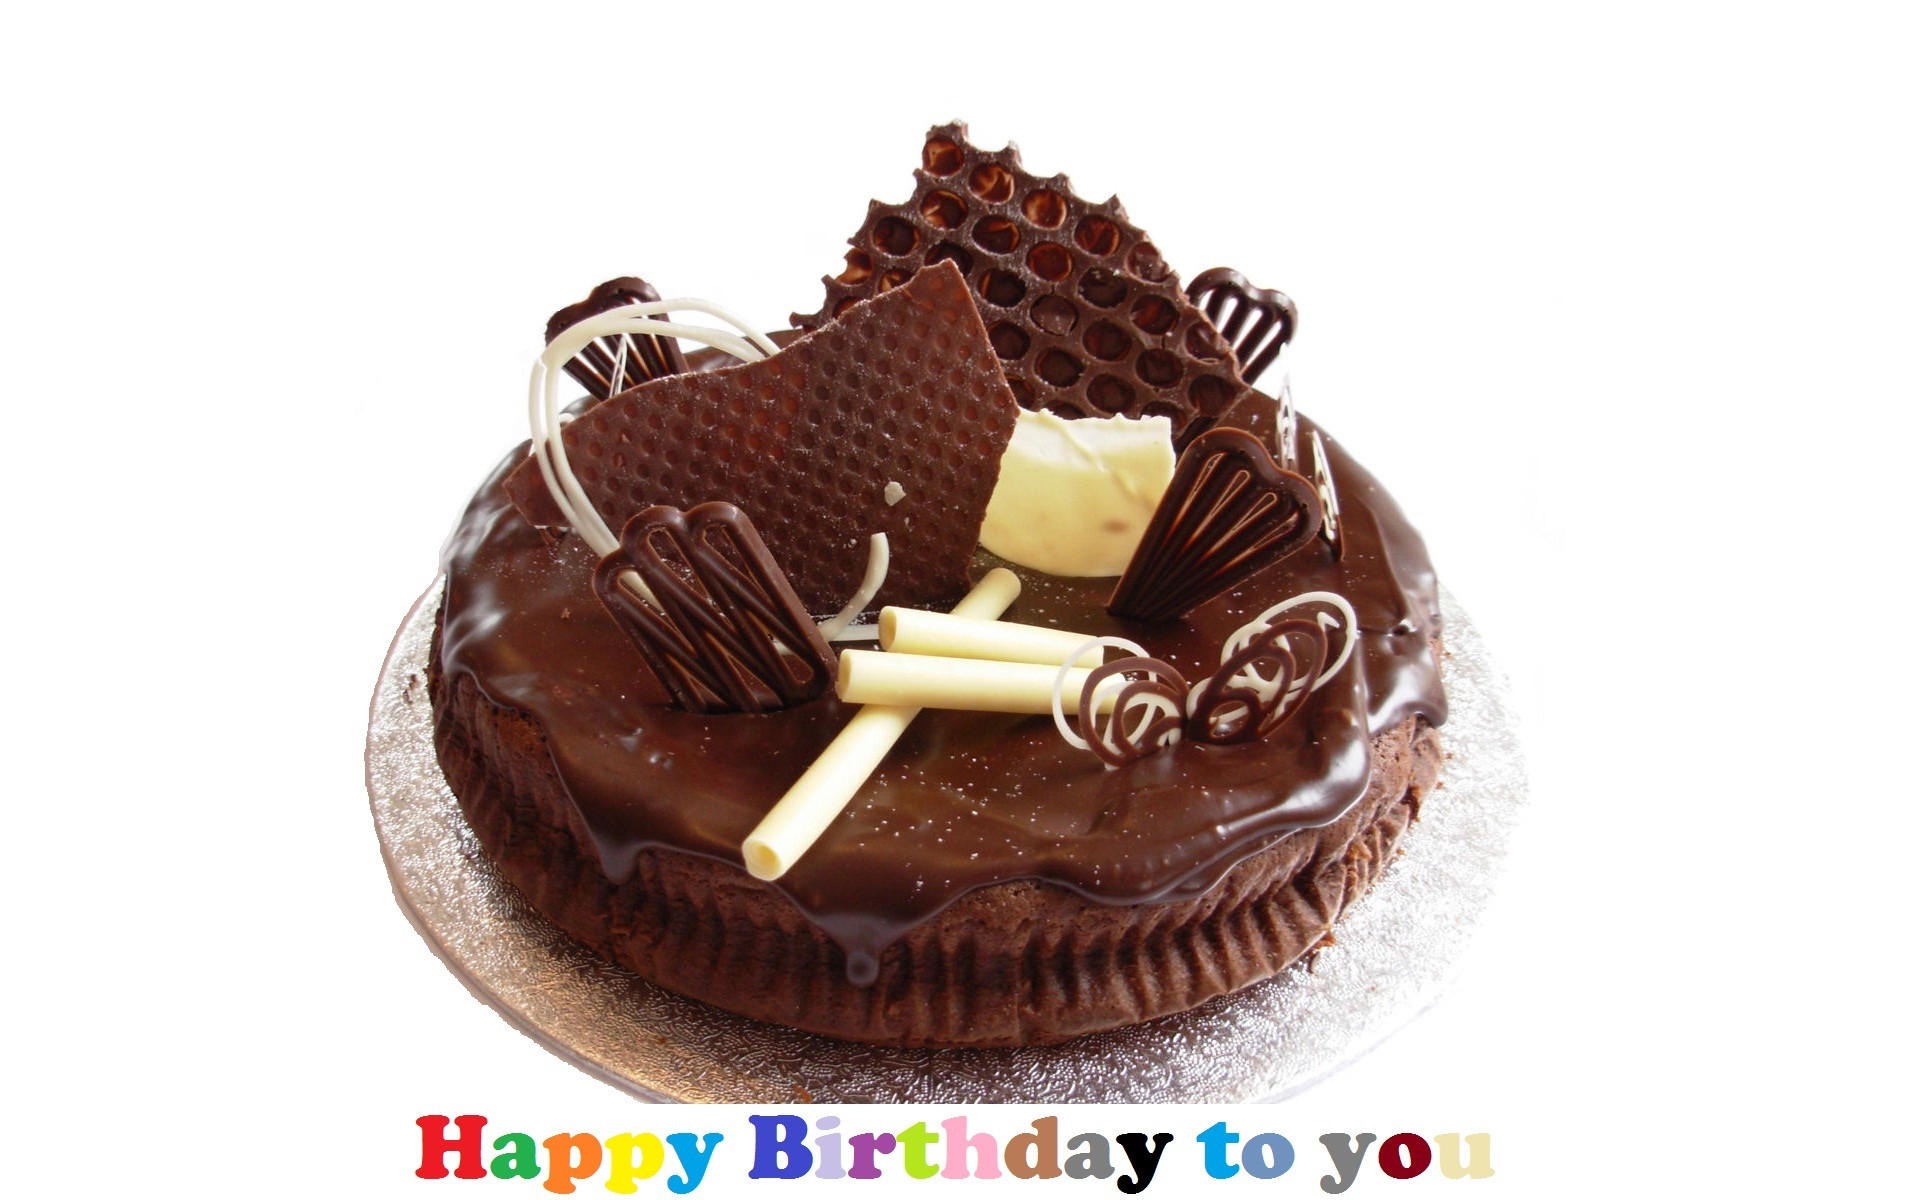 Best ideas about Happy Birthday Choco Cake . Save or Pin 1000 images about BIRTHDAY GREETINGS on Pinterest Now.